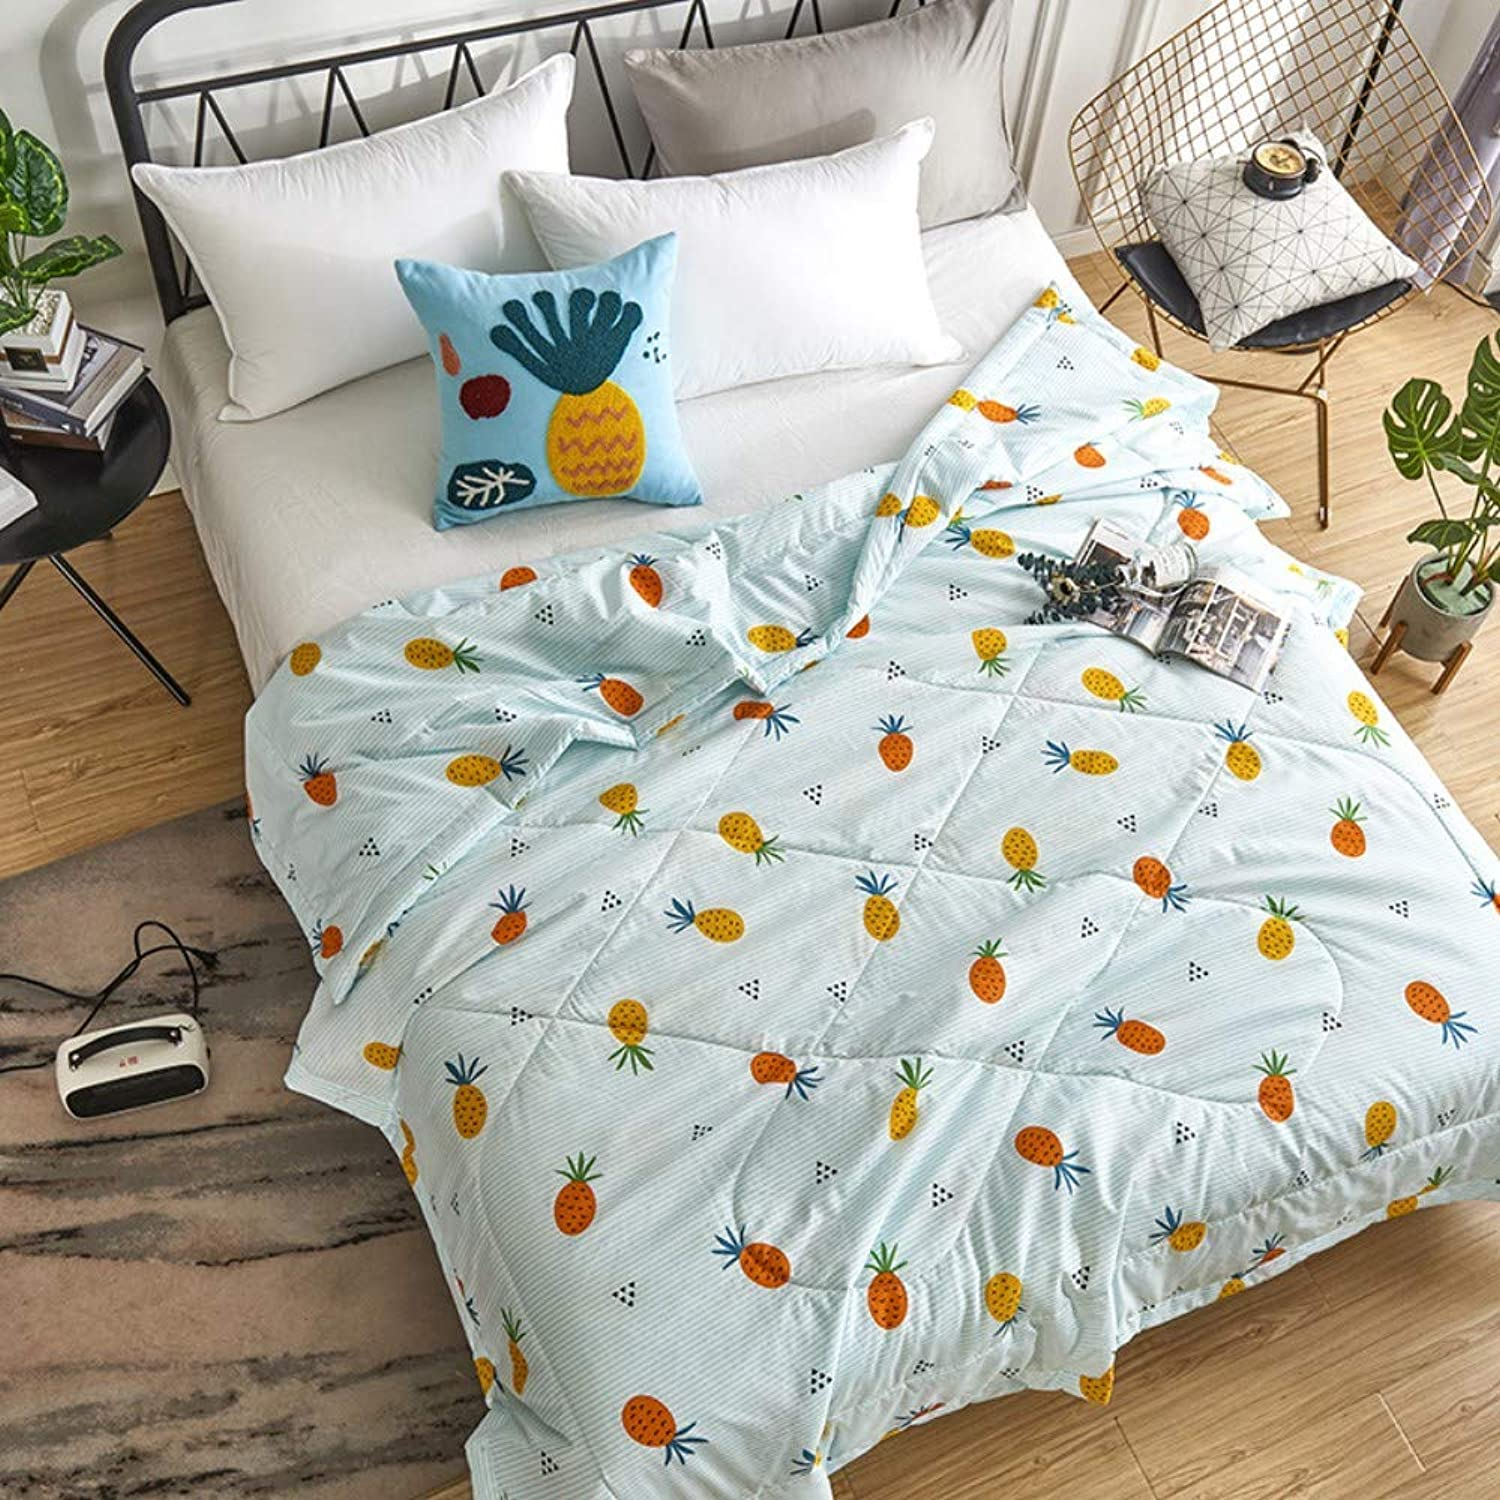 Double Quilt Cotton Print Spring and Autumn by air Conditioning by Two Summer Cool Quilt Breathable, Fruit colorful - Green, 180  200cm